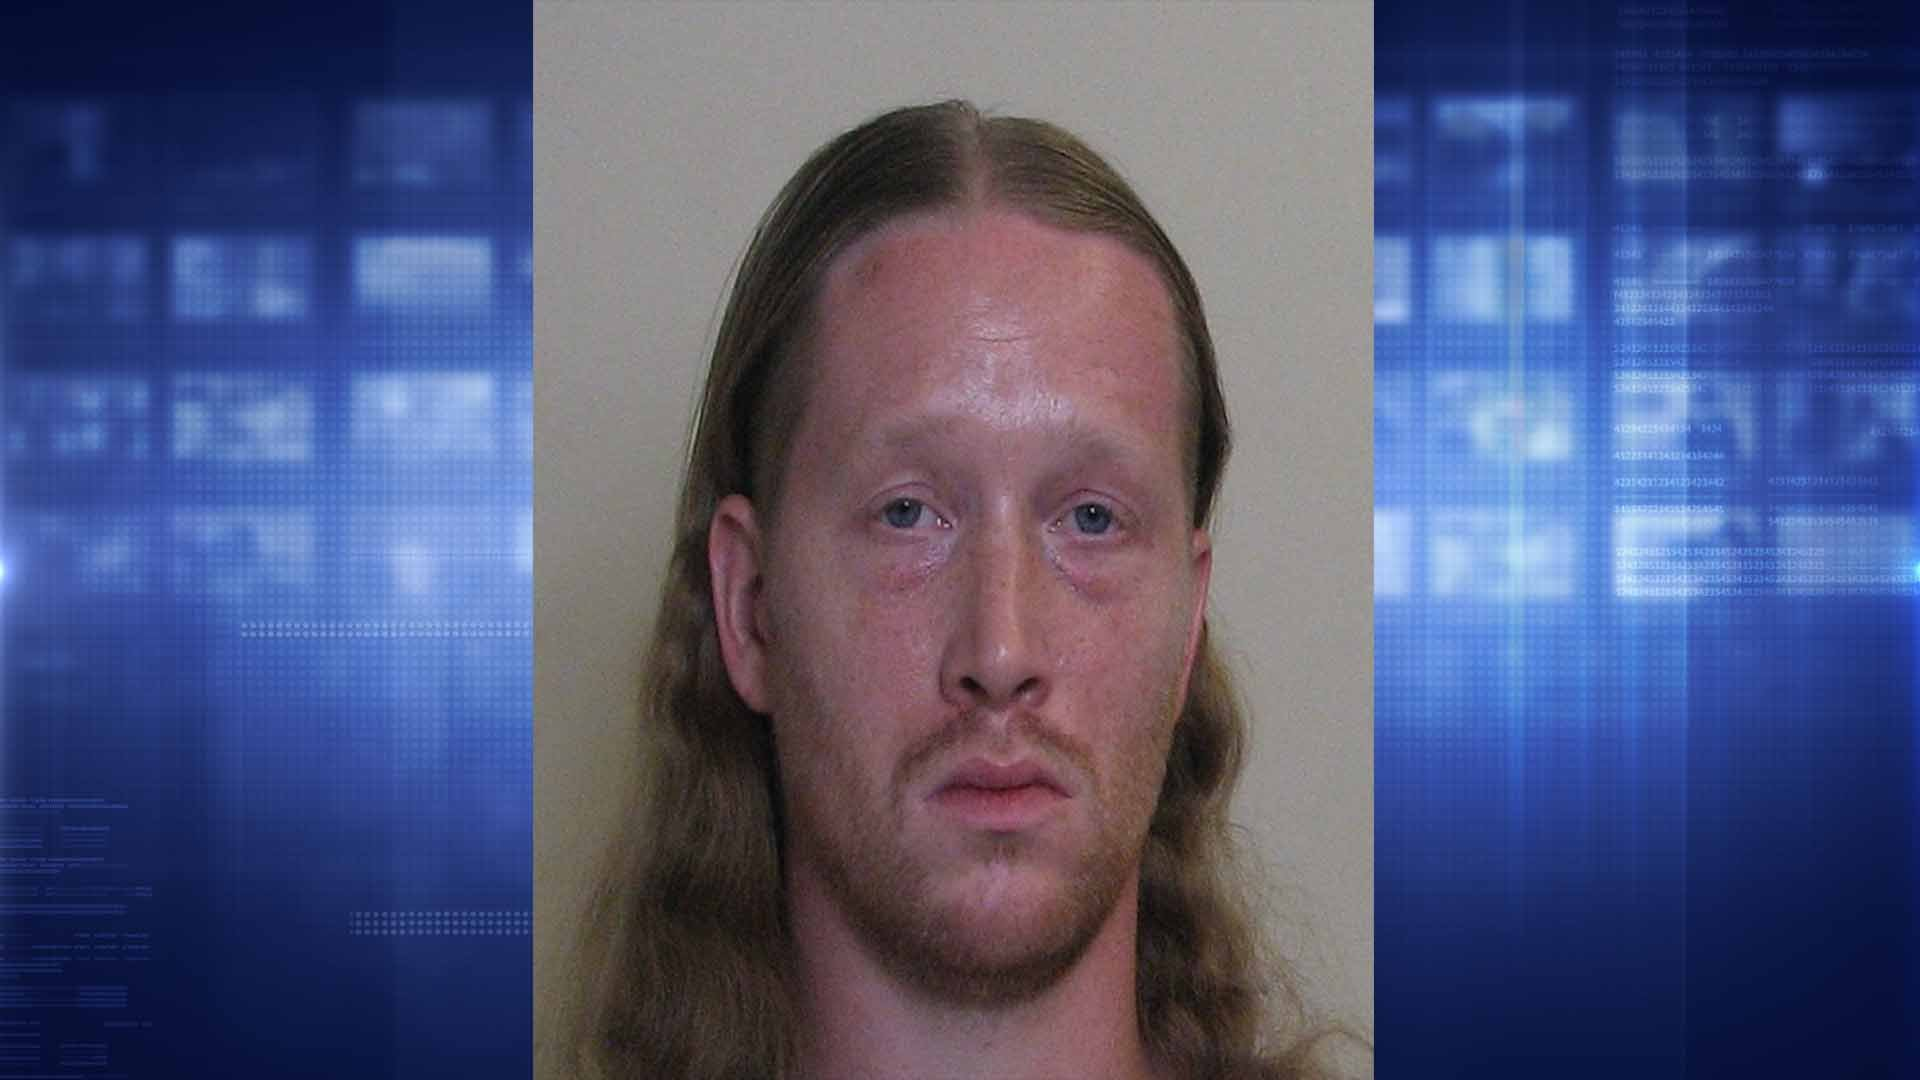 Tony Fennell is accused of trying to hire someone to kill a woman he had a previous relationship with.